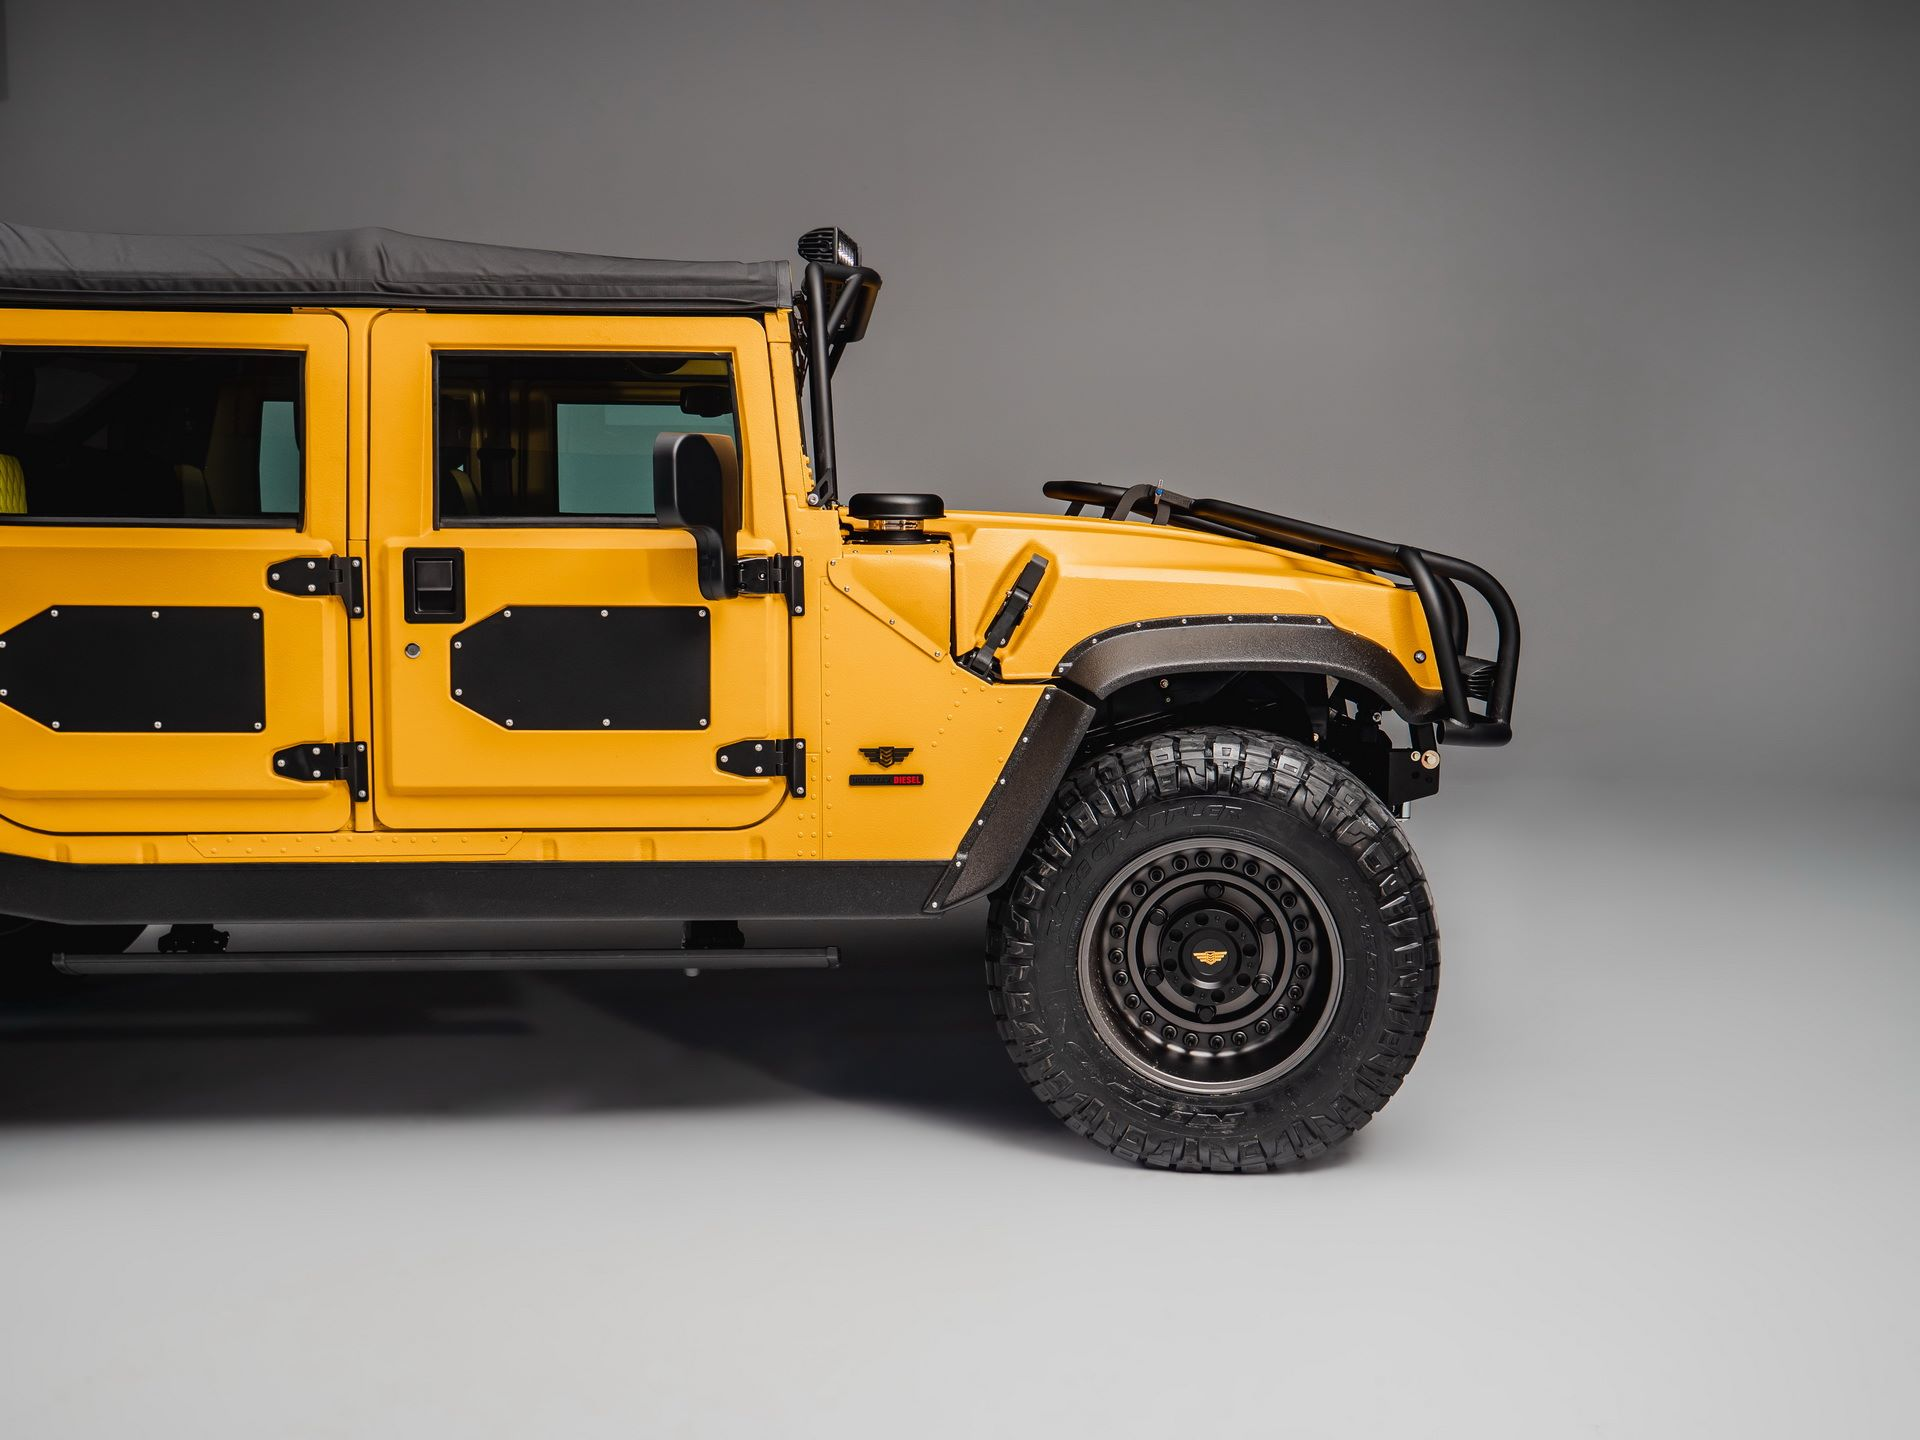 Hummer-M1-R-by-Mil-Spec-16